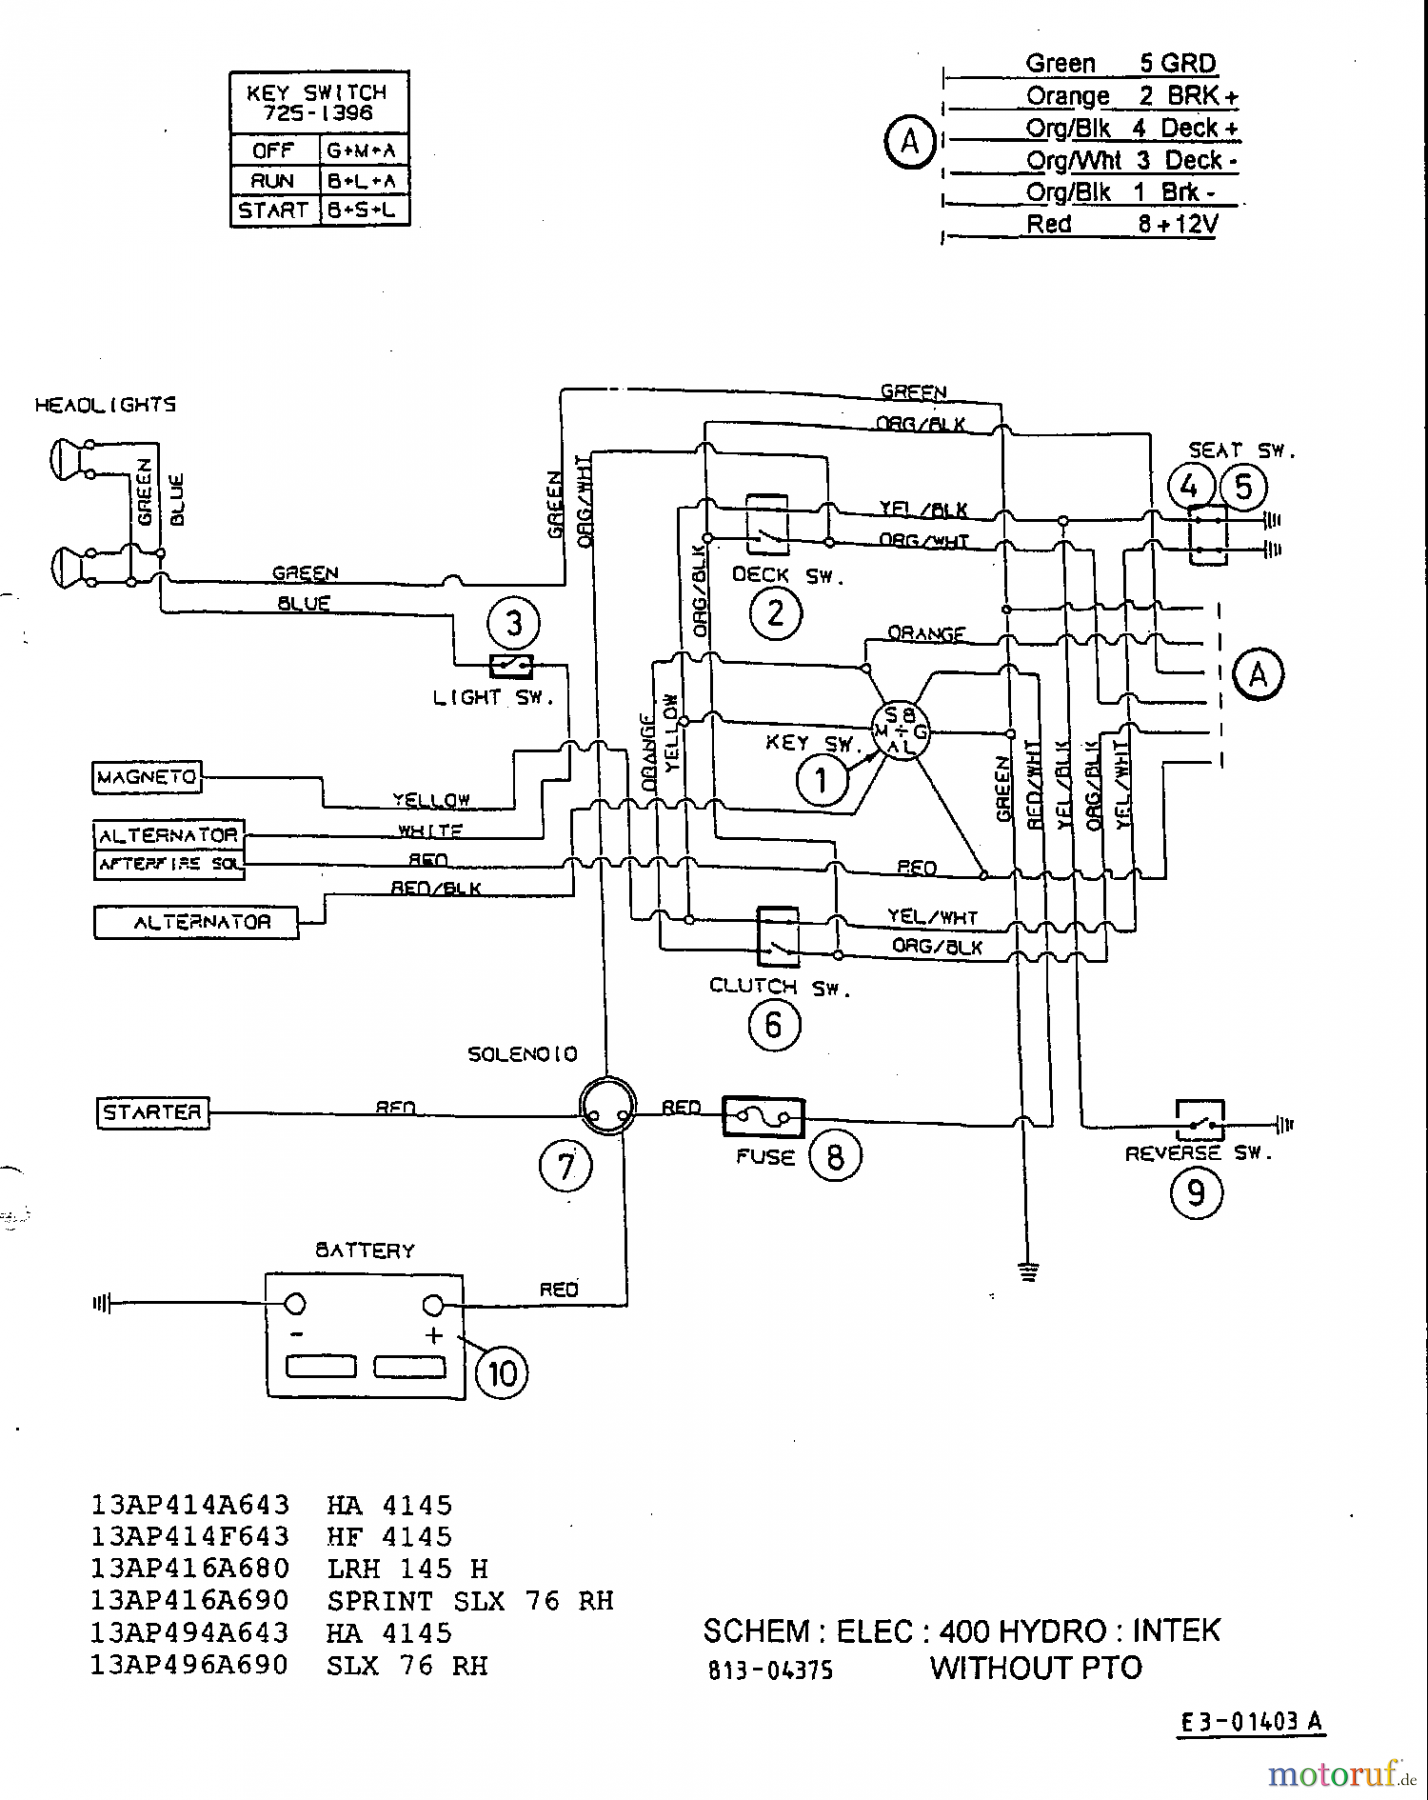 Yardman Wiring Diagram 42a707 Start Building A Briggs And Stratton 18 Hp Mtd Riding Mower With Yard Machine On Ride Rh Pinterest Com Murray